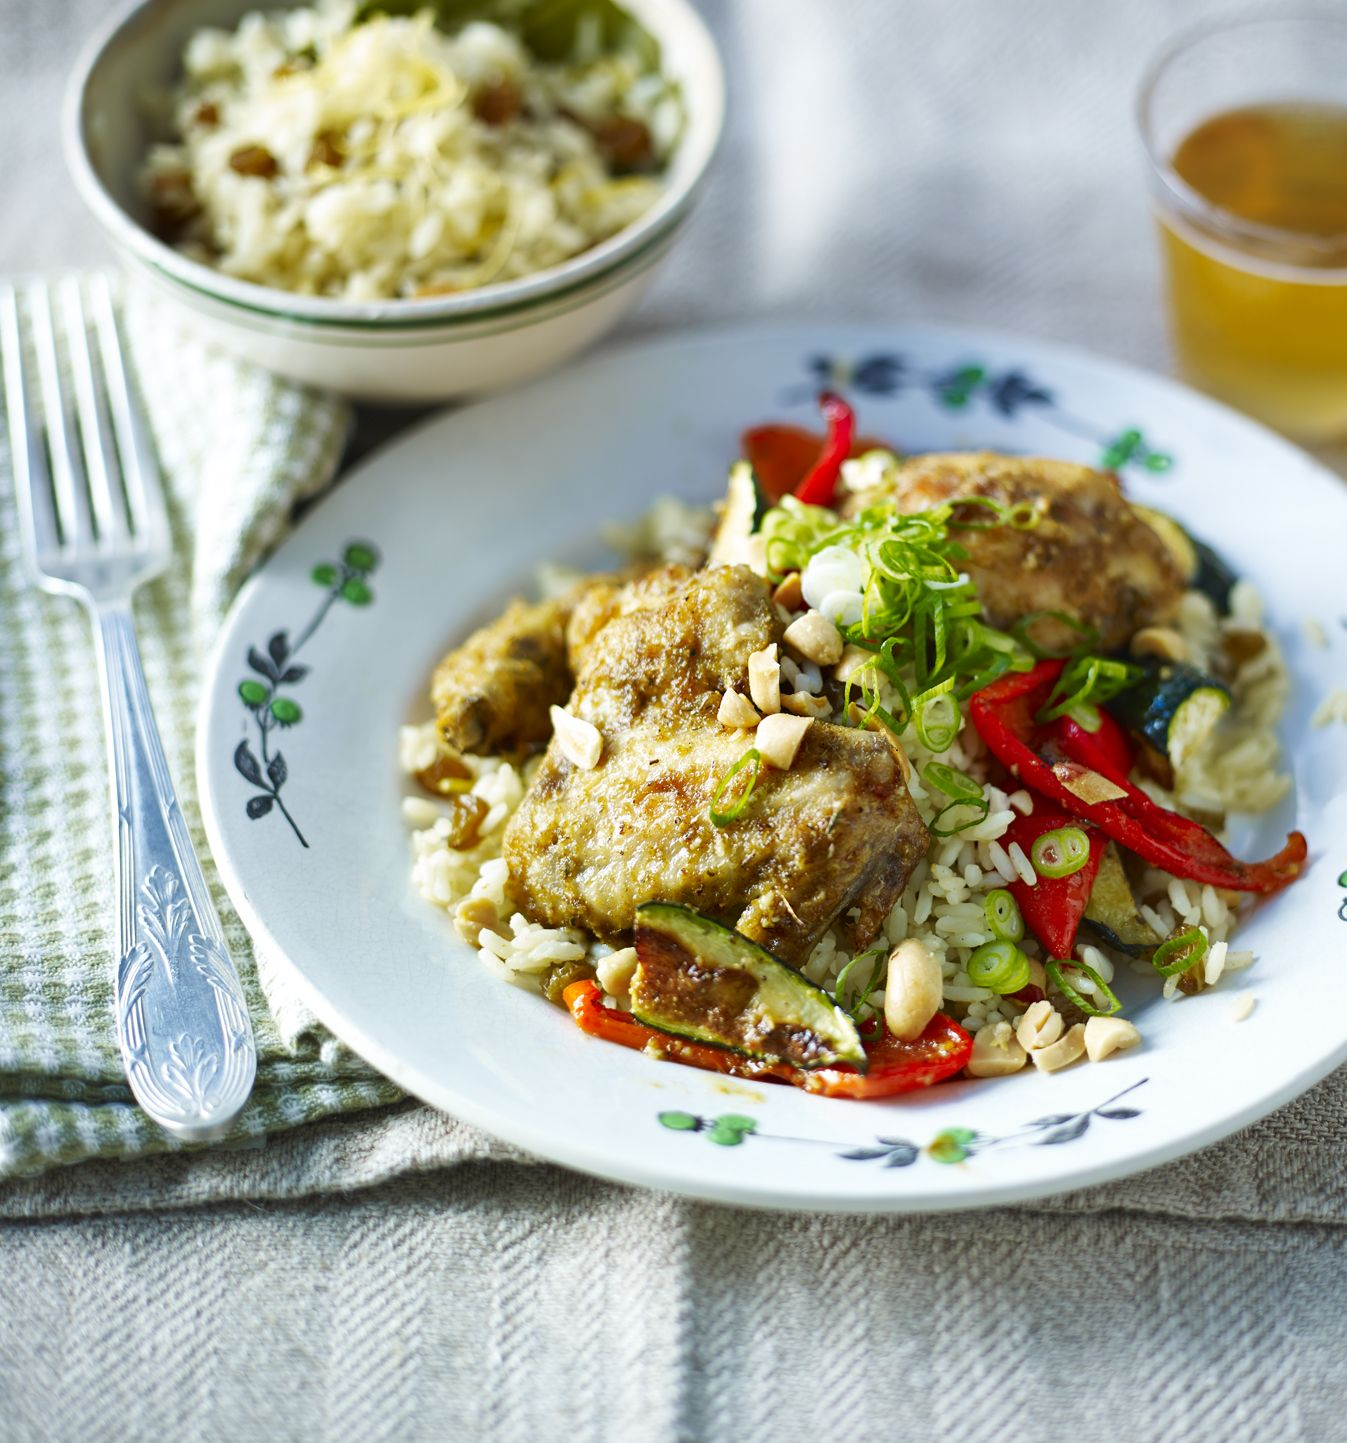 Chicken with spicy rice recipe chicken tonight by michelle chicken with spicy rice recipe chicken tonight by michelle connor pinterest healthy recipes recipes and foods forumfinder Choice Image